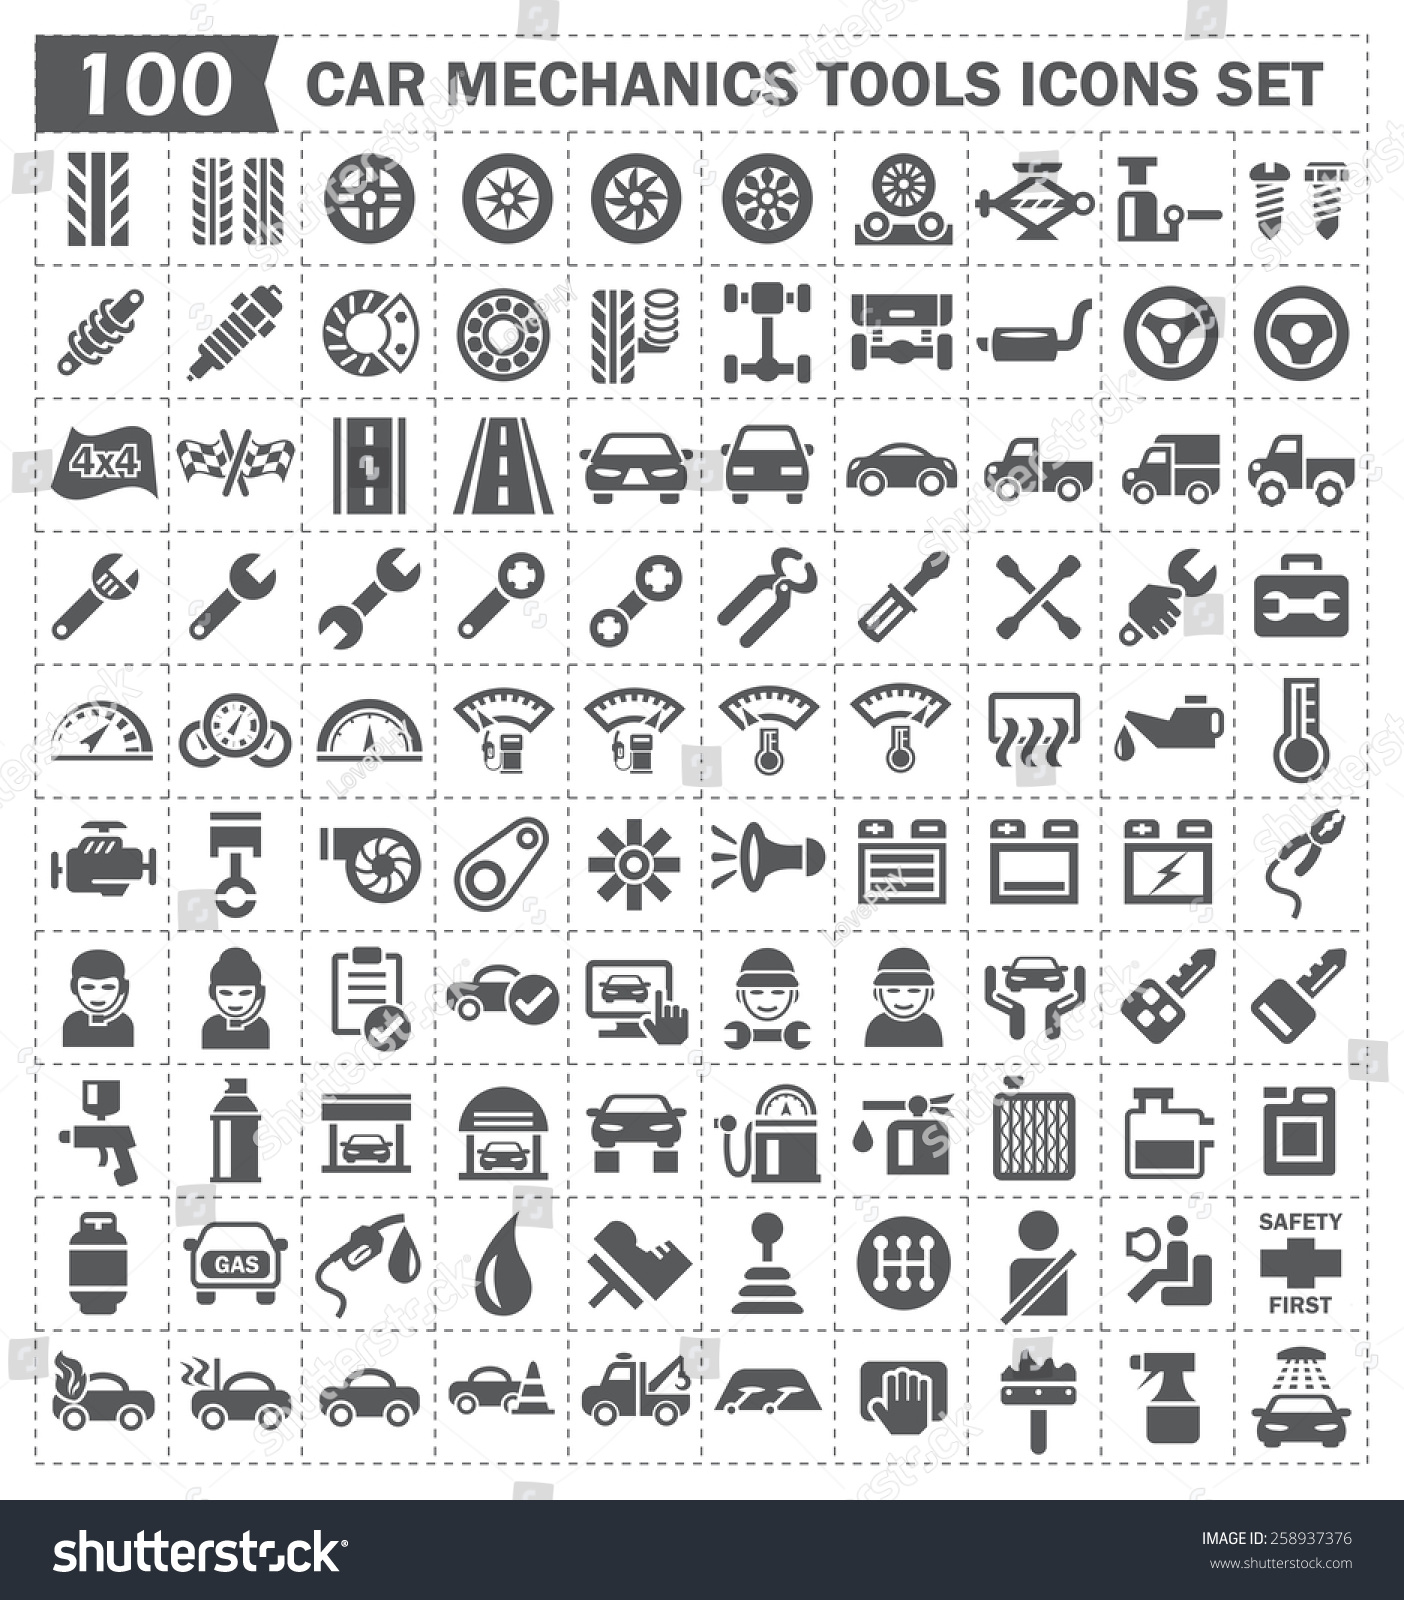 Tools Names And Pictures Mechanic 100 icons of car mechanics tools and. Watch more like Auto Mechanic Tools Names